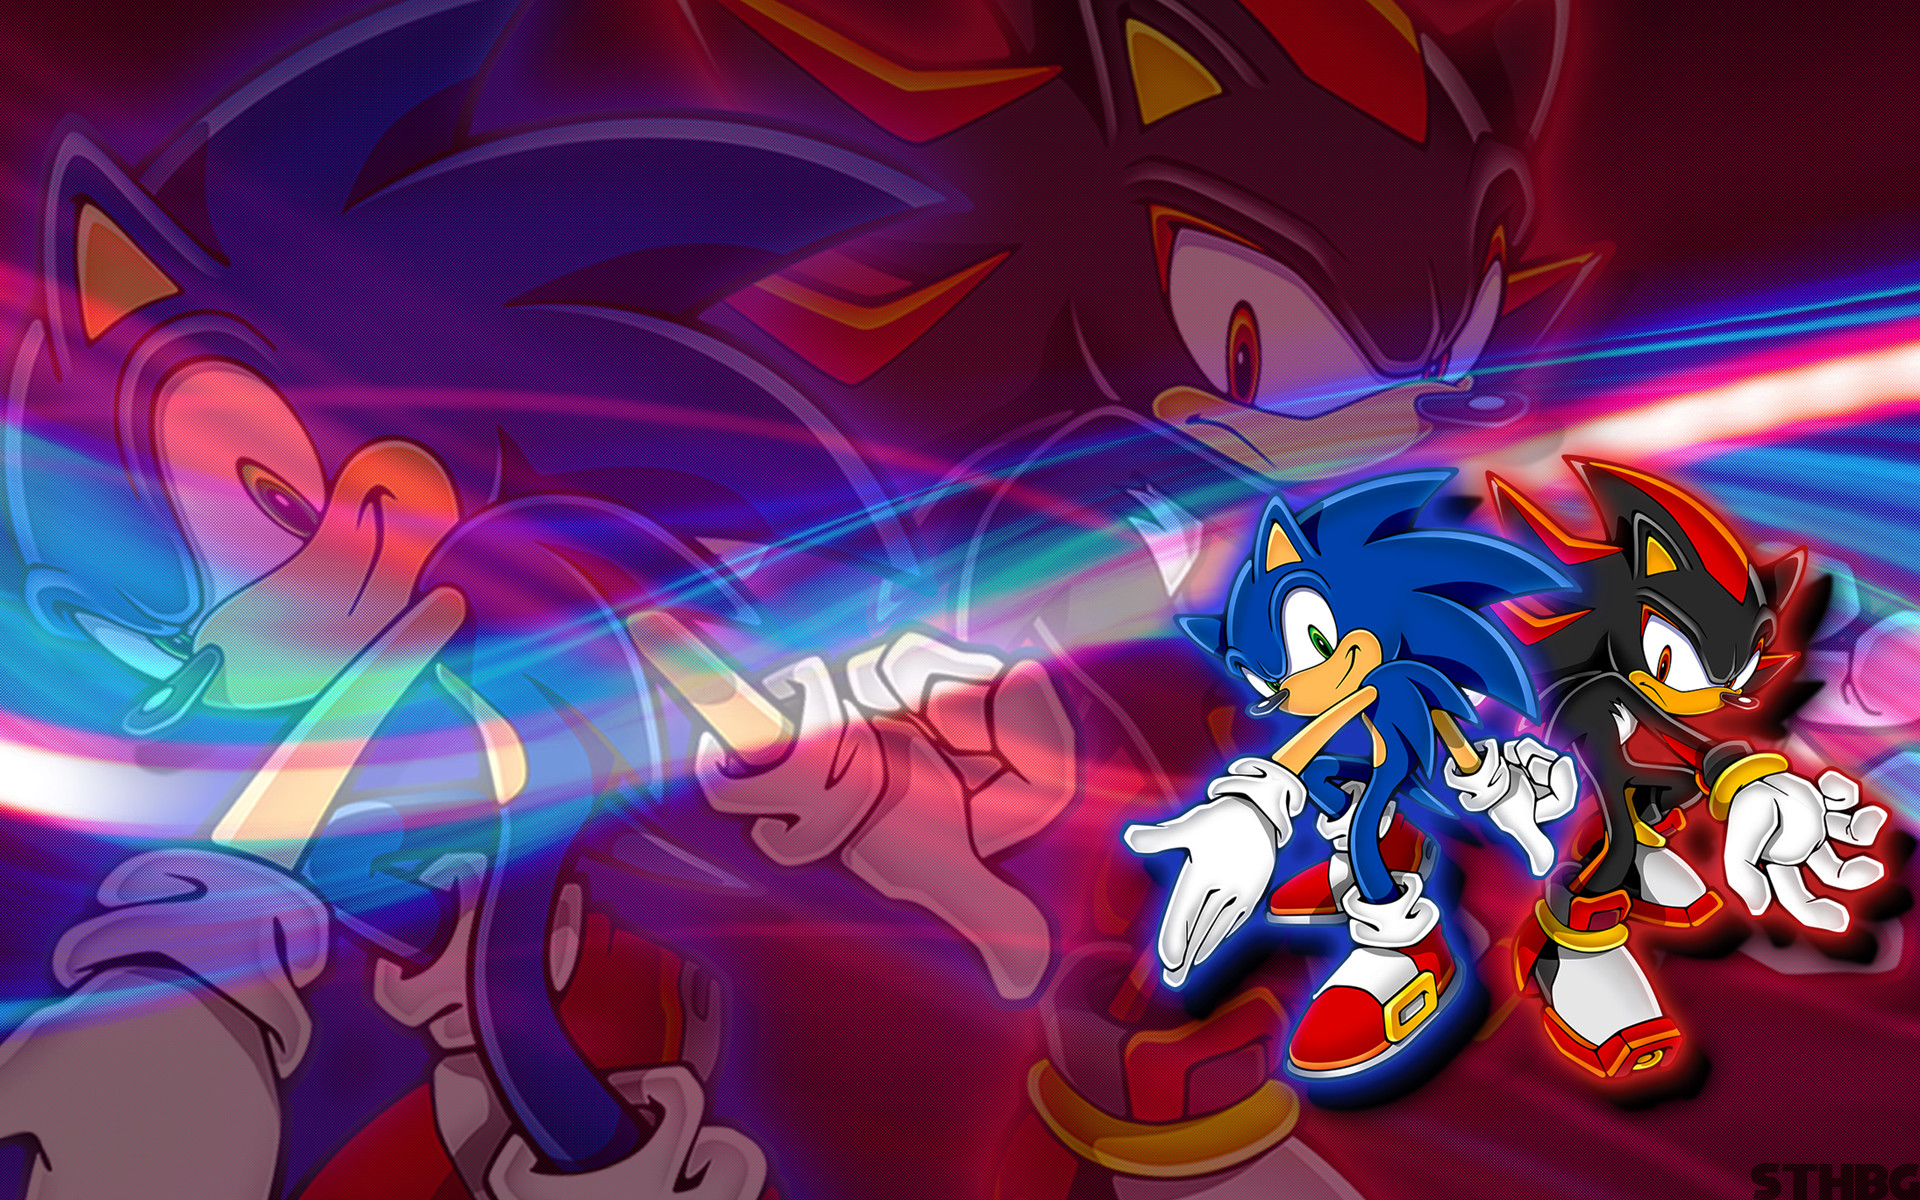 Sonic,Shadow And Silver Wallpaper By SonicTheHedgehogBG On DeviantArt